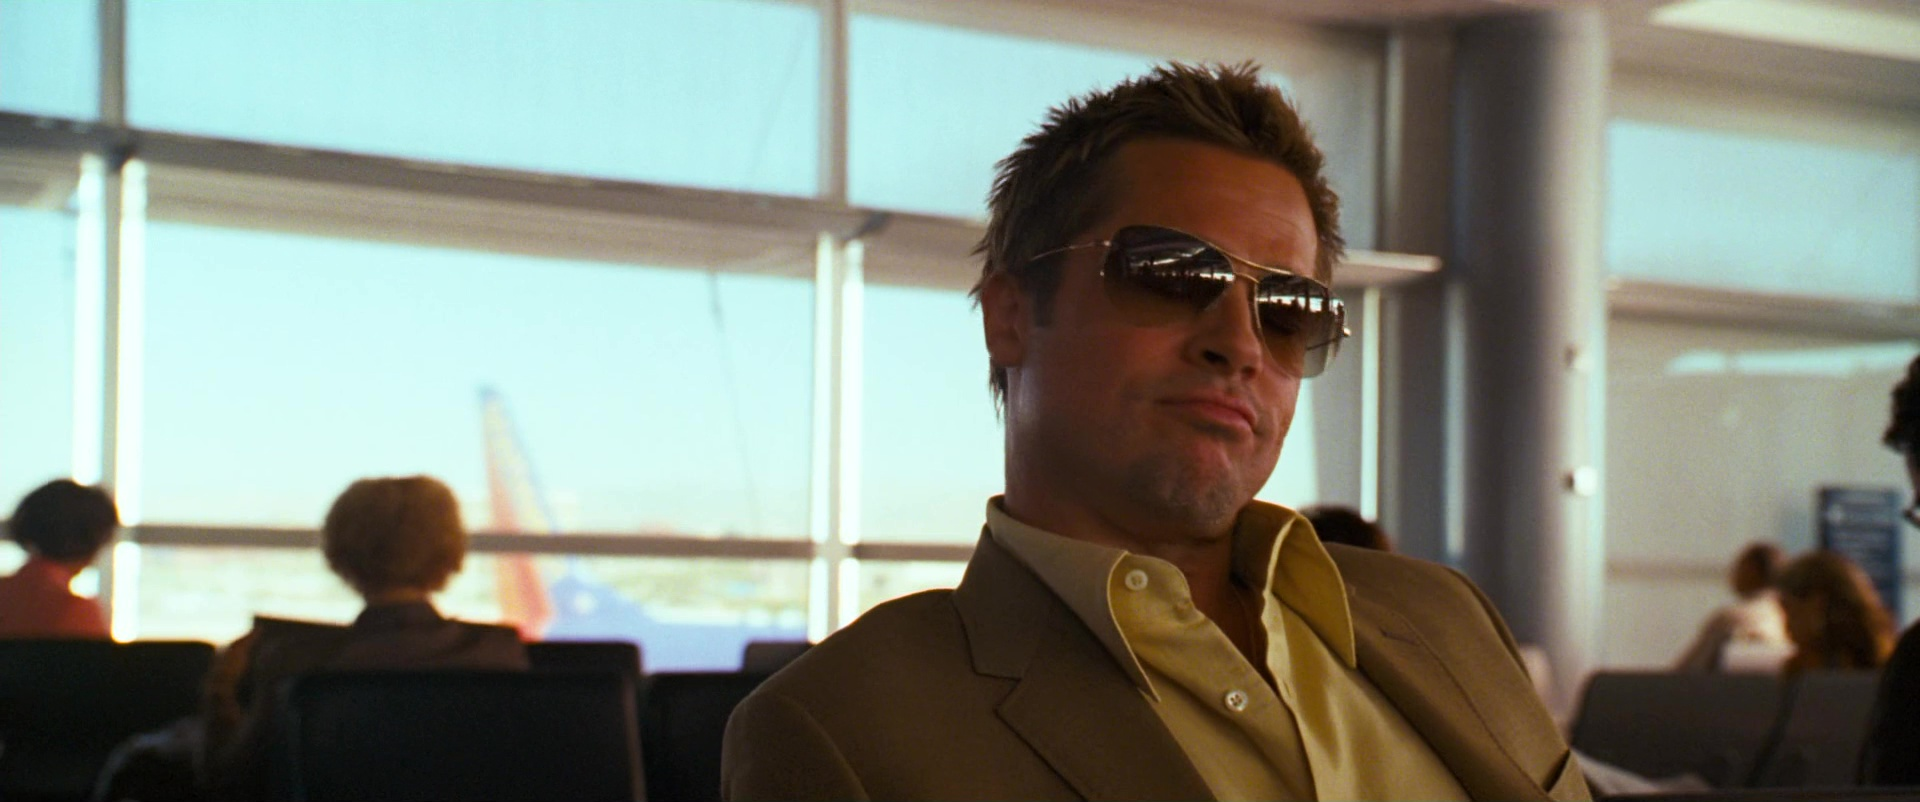 9420dea612 Oliver Peoples Strummer Sunglasses Worn by Brad Pitt in Ocean s Thirteen  (2007) Movie Product